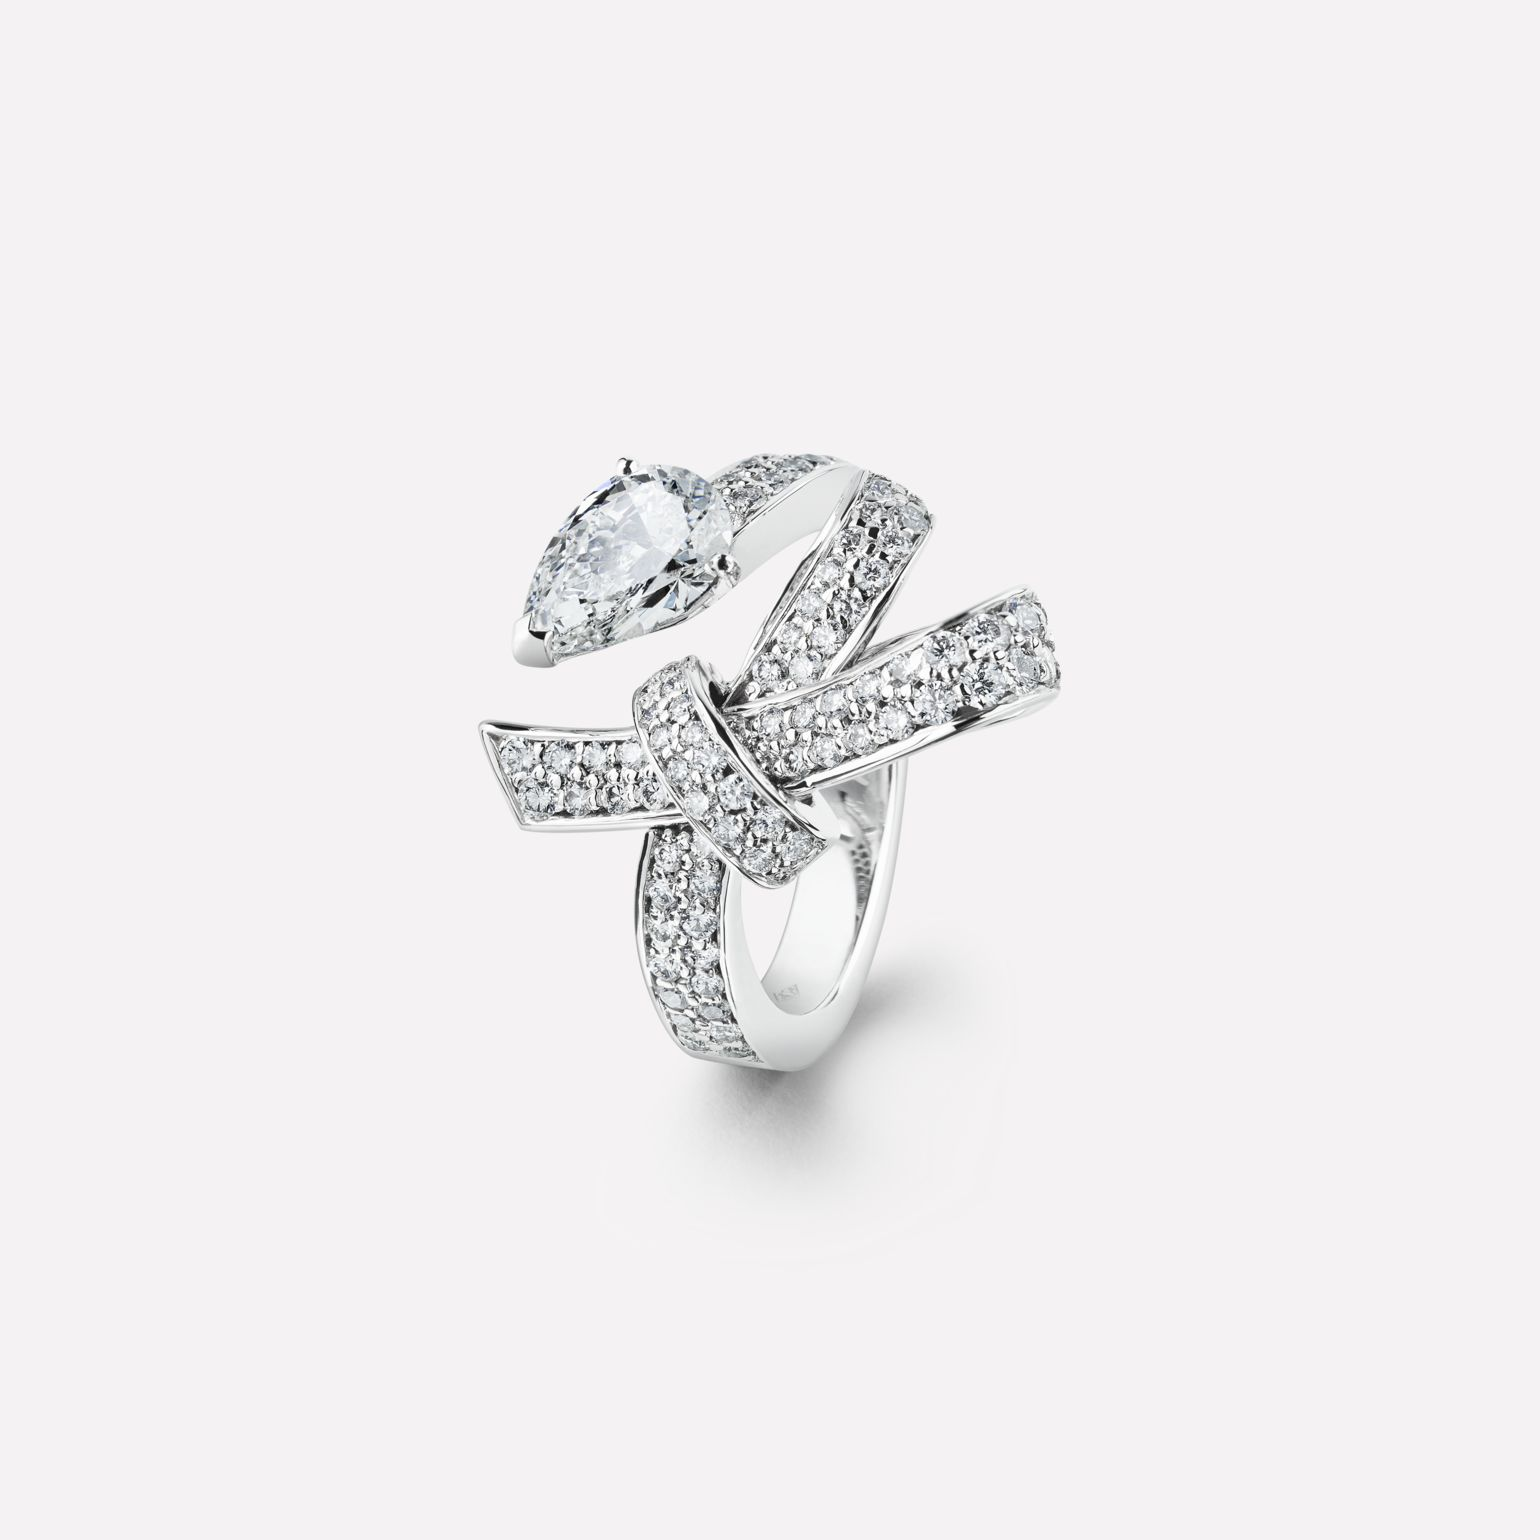 Ruban ring Ruban ring in 18K white gold and diamonds with one center diamond